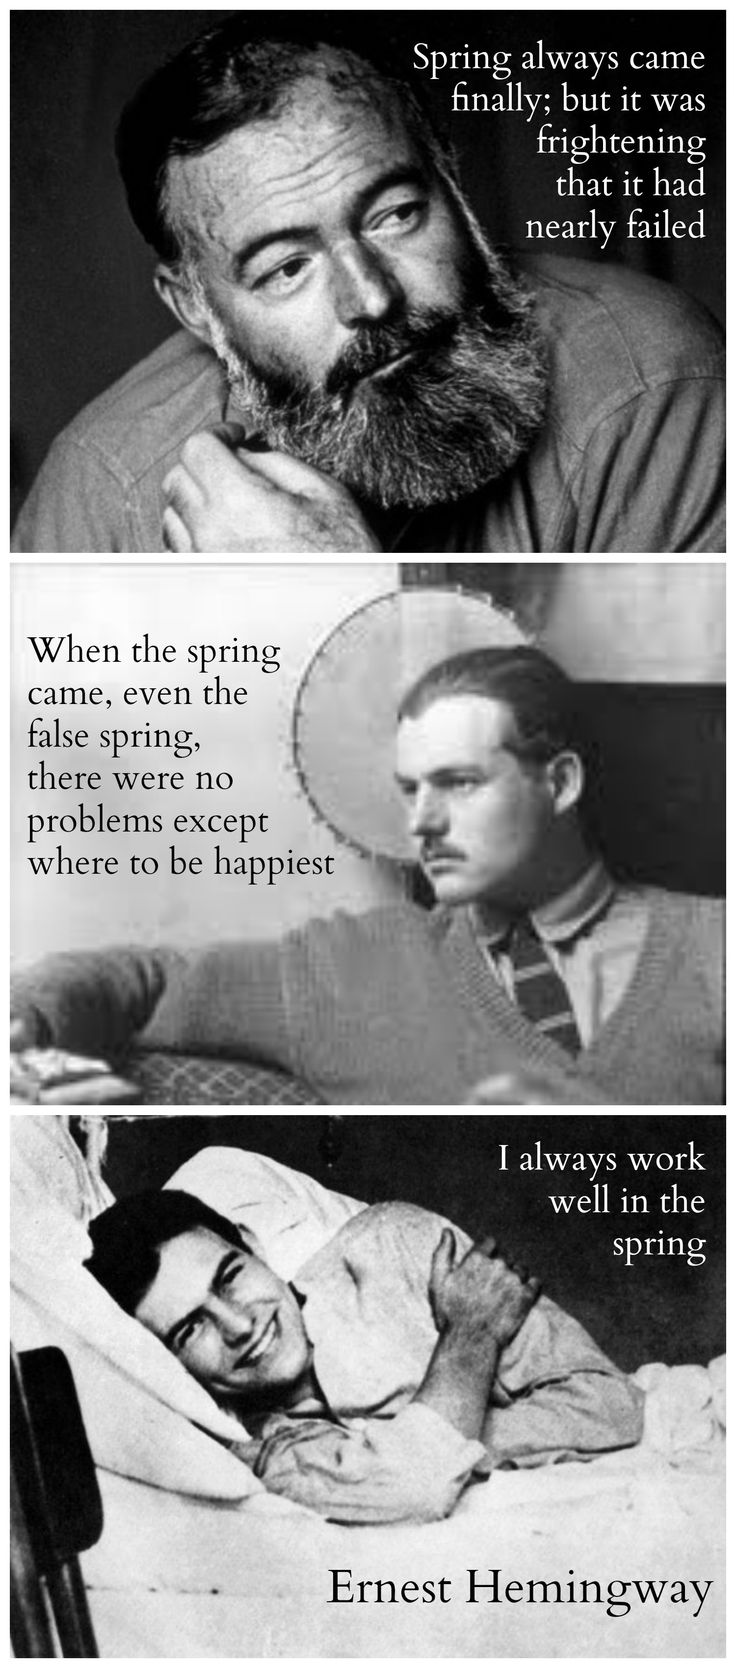 Links to an intimate article about Hemingway and the connections we forge with heroes we never meet. Ernest Hemingway, Aging and Quotes about Spring